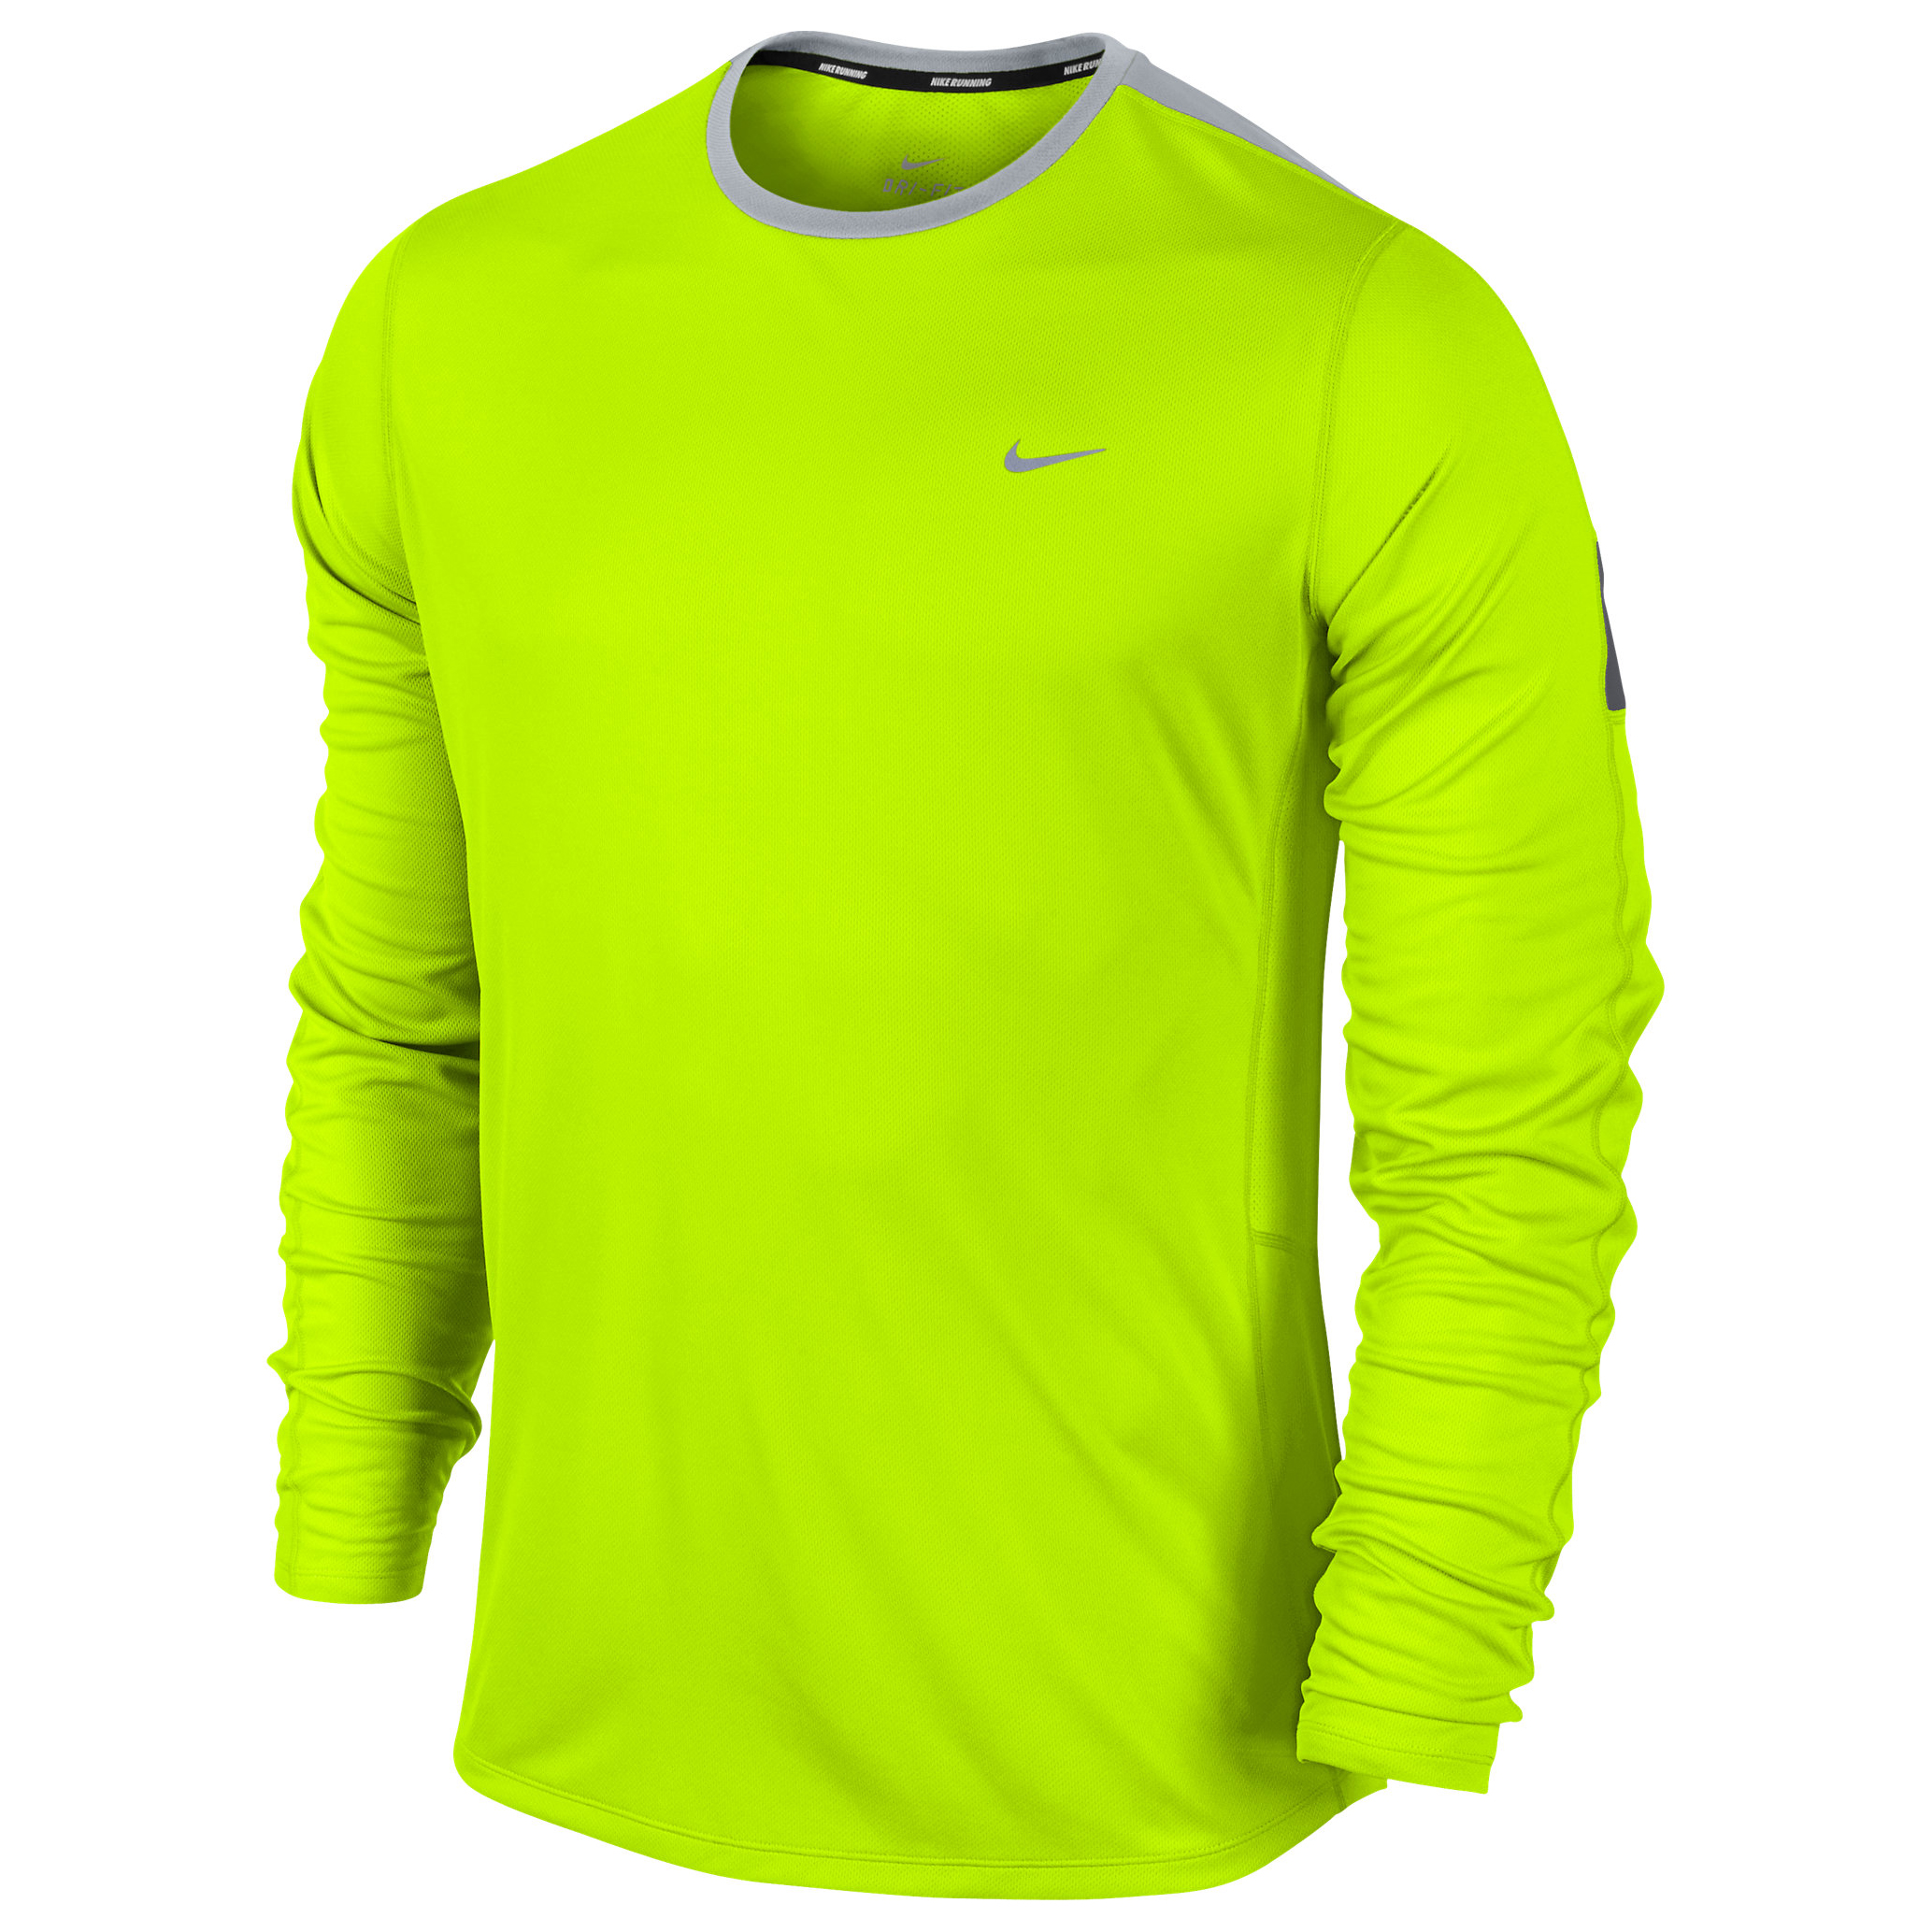 Nike Racer Flash LS Tee Yellow